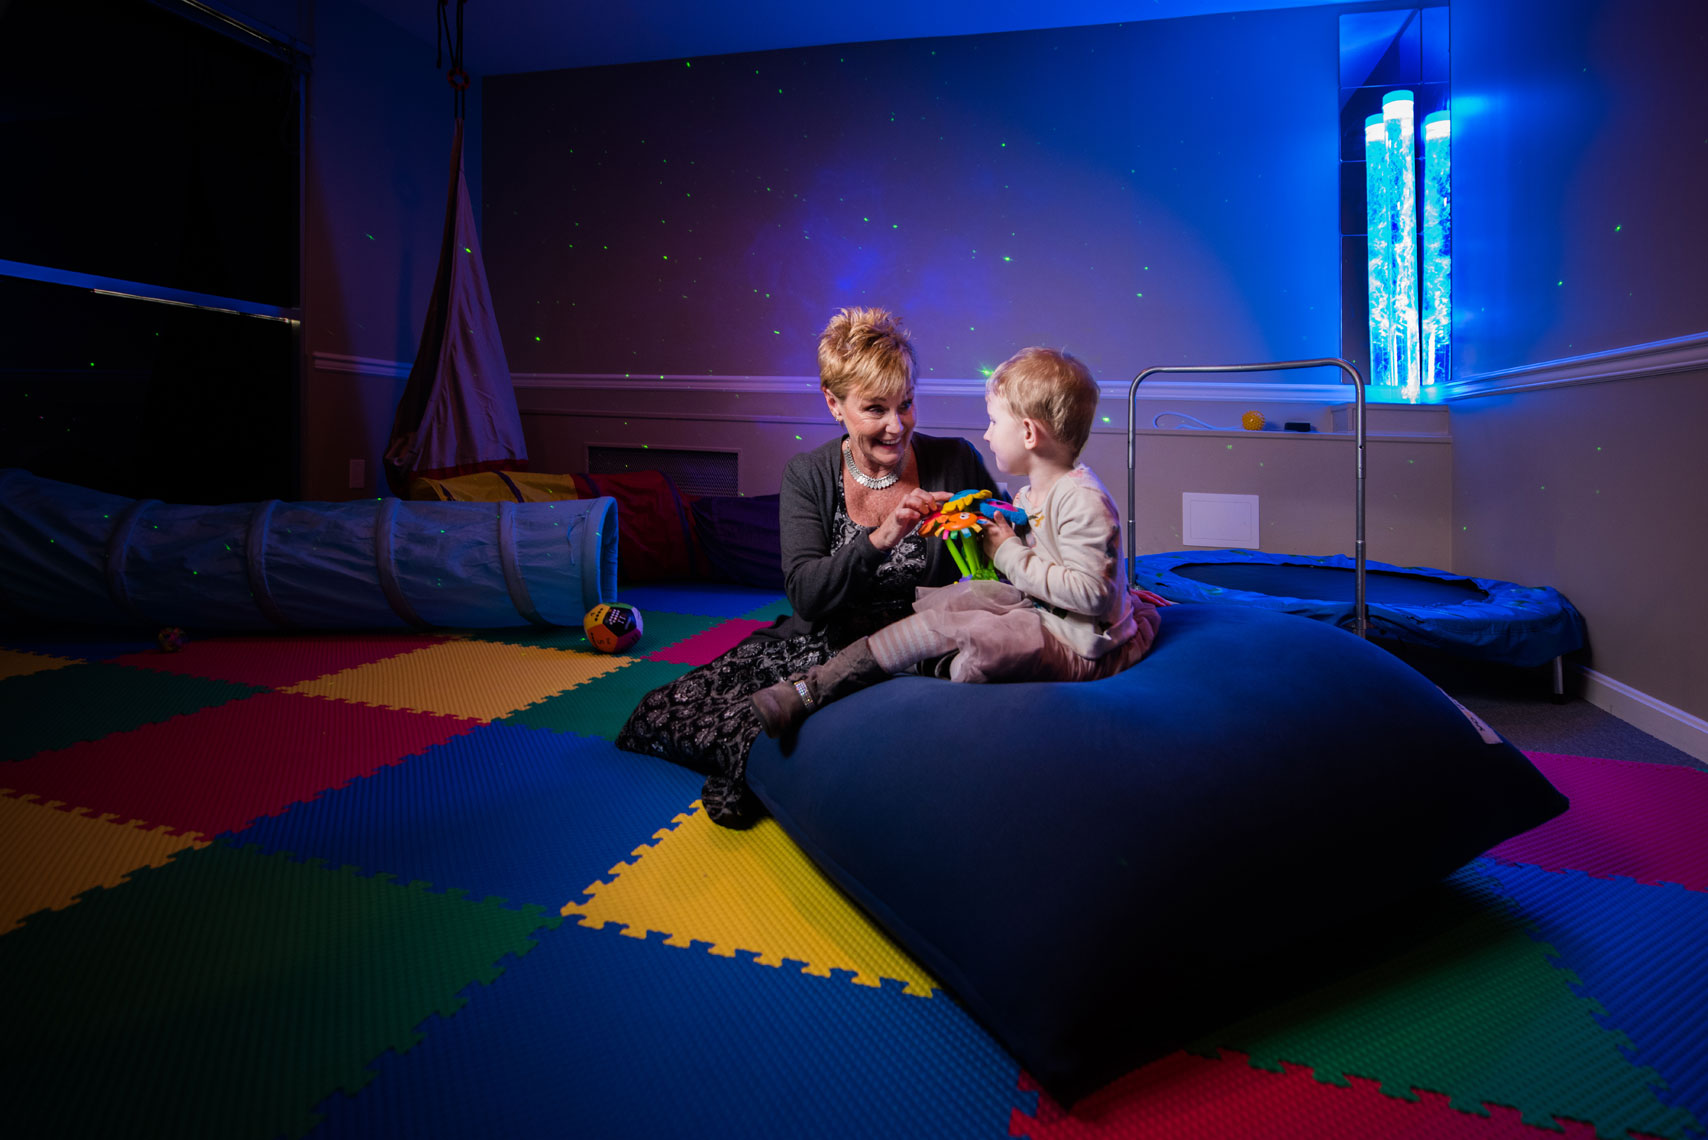 The McArdle Center for Early Autism Intervention, by education photographer Mike Morgan